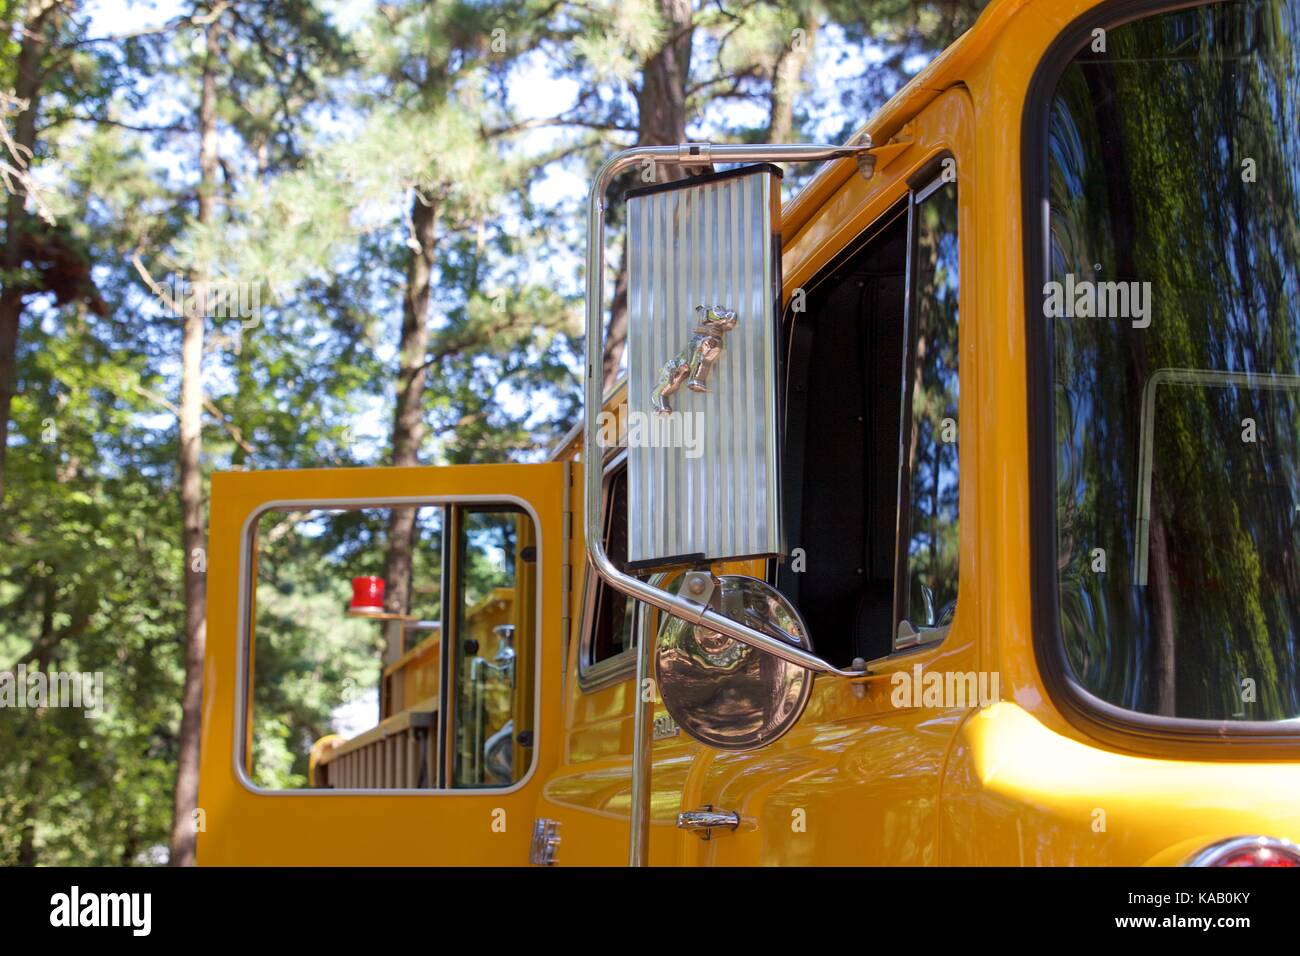 Detail from a yellow 1977 Mack/KME pumper at the 37th Annual Fire Apparatus Show and Muster at WheatonArts, in Millville, - Stock Image